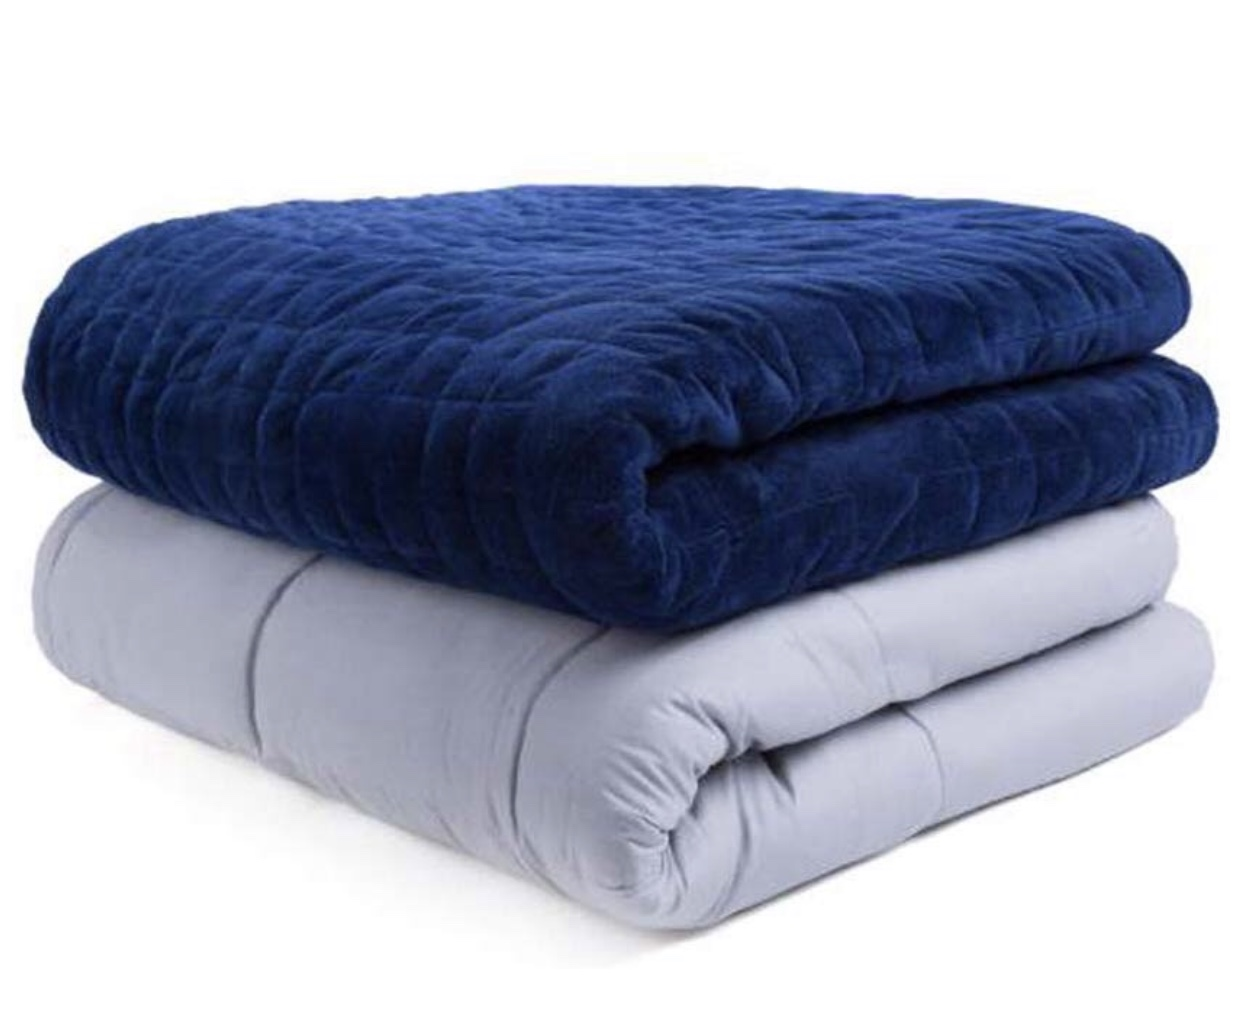 Gifts for the man who has everything:  weighted blanket